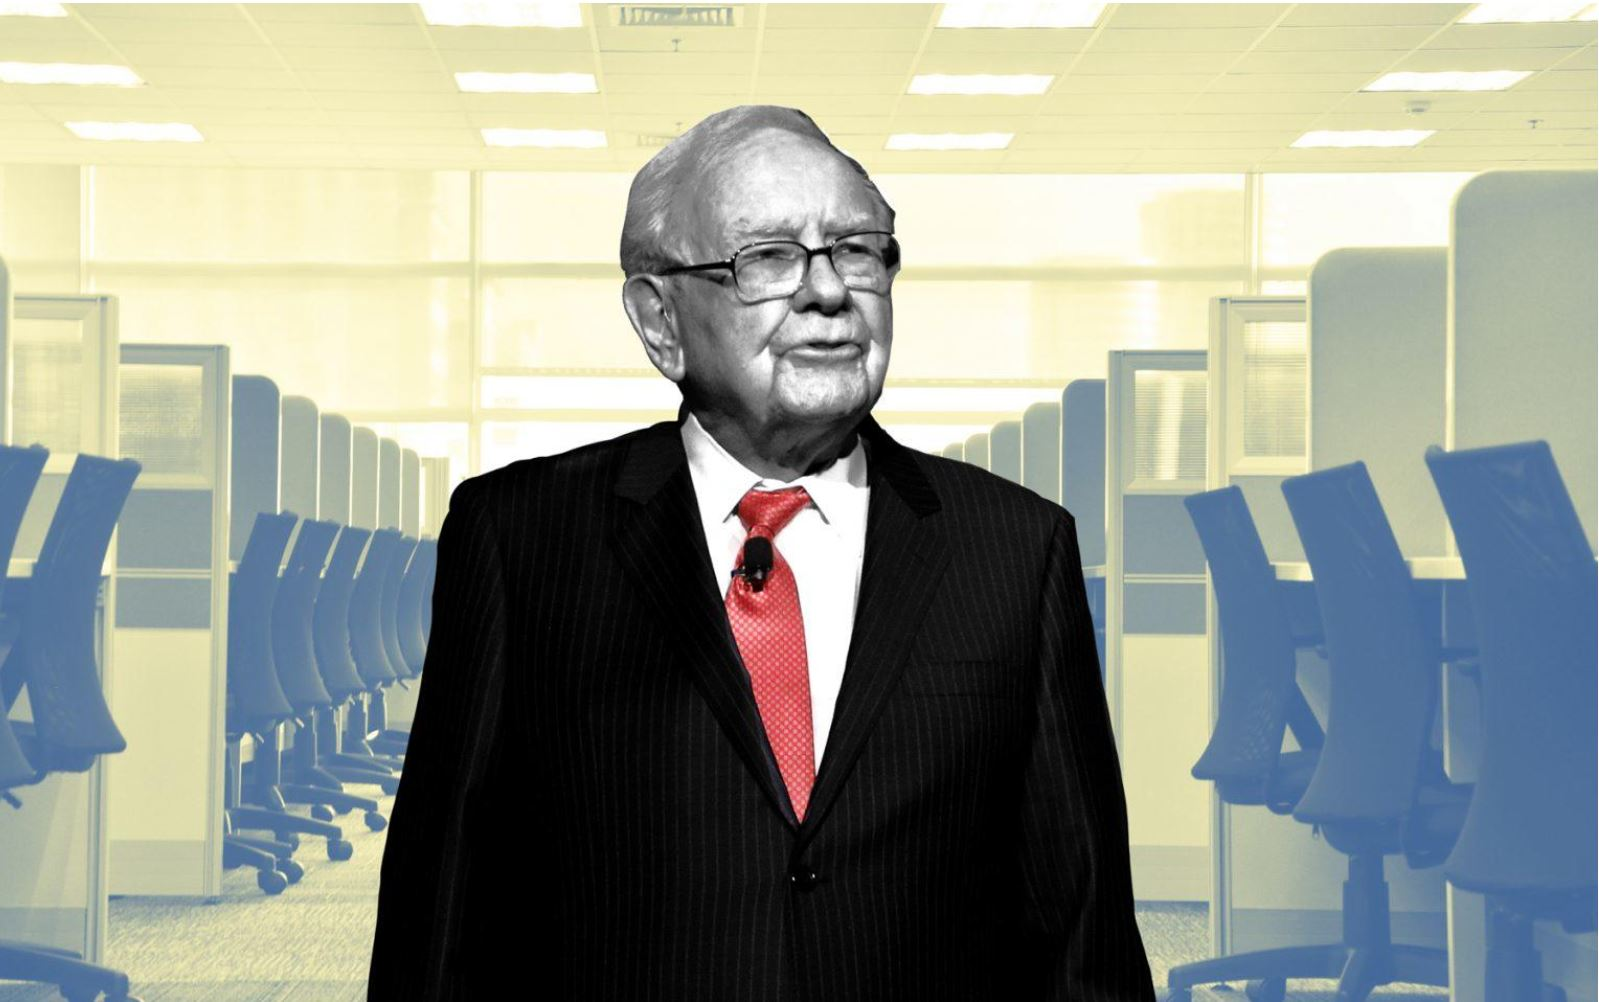 VirBELA 2020 05 07 Warren Buffet questions the need for office space GPREG eXp artery Barry Hoey its The Future of Work Hoey Team eXp Realty